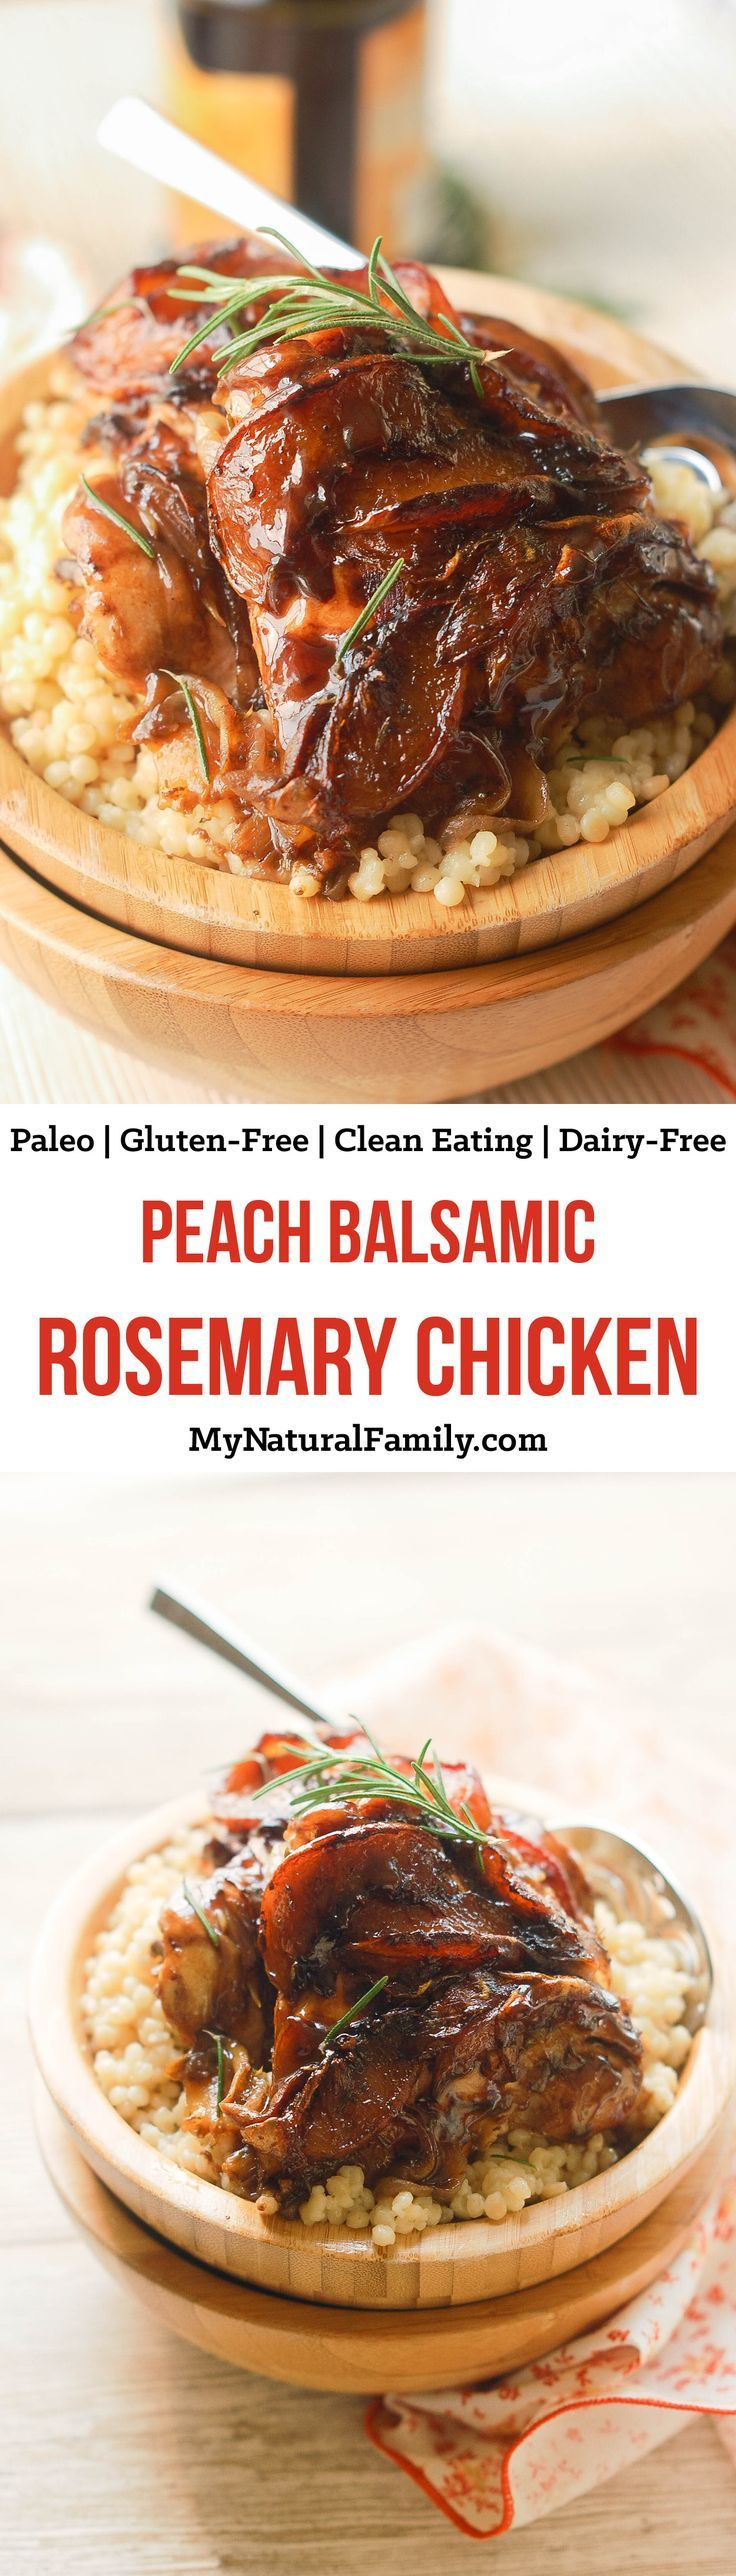 This peach balsamic rosemary chicken recipe is so easy to put together and is such an elegant combo of flavors. Fresh summer peaches and rosemary pair so well with a rich balsamic reduction.